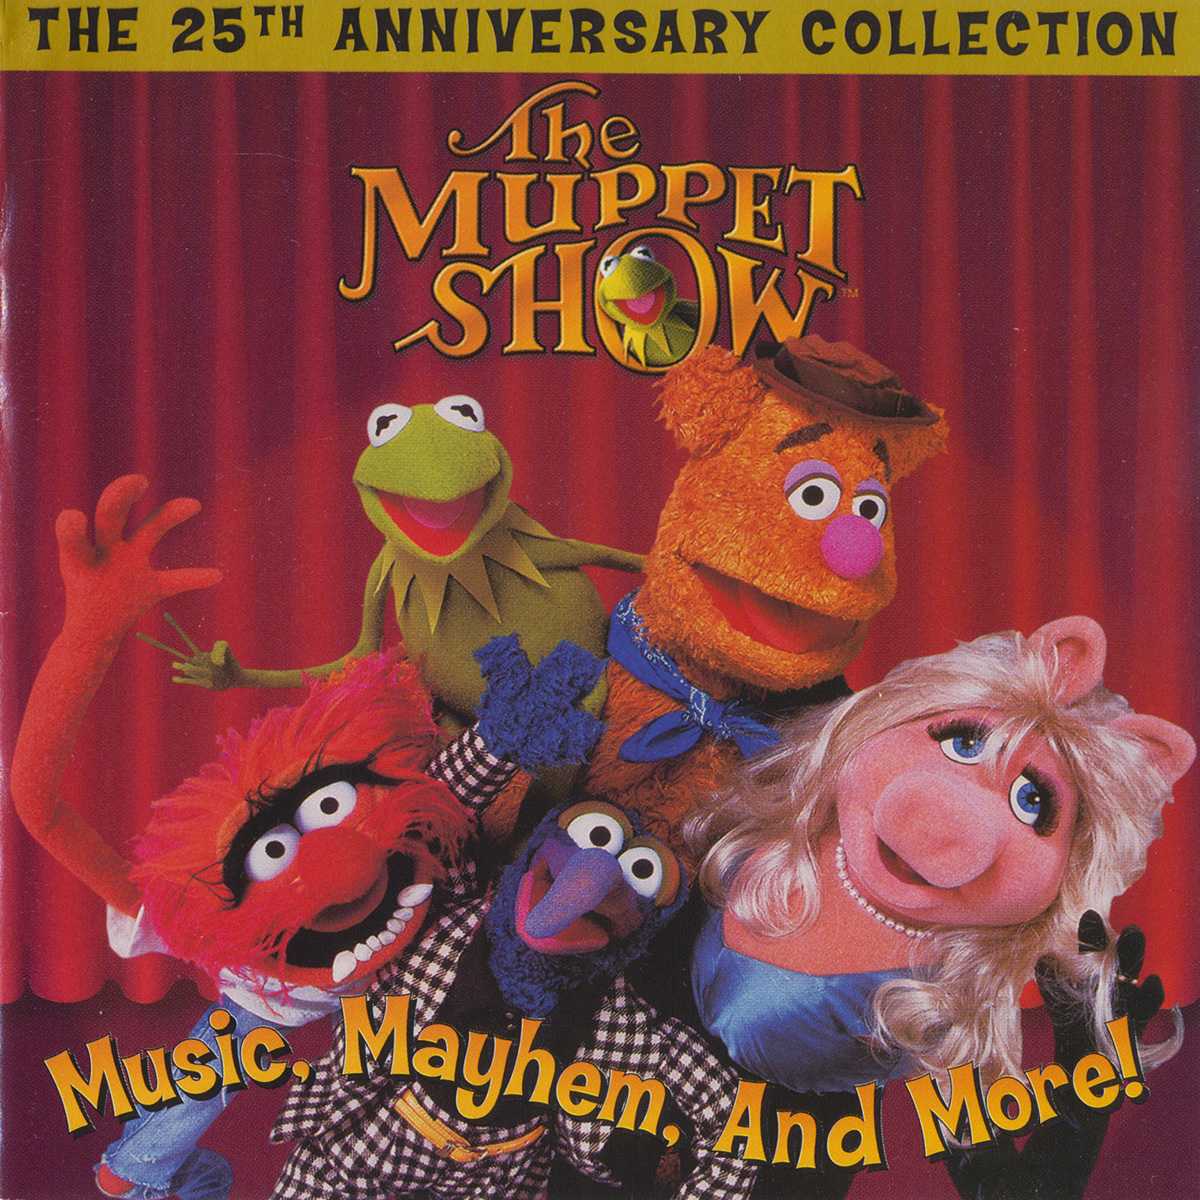 muppet show 25th anniversary